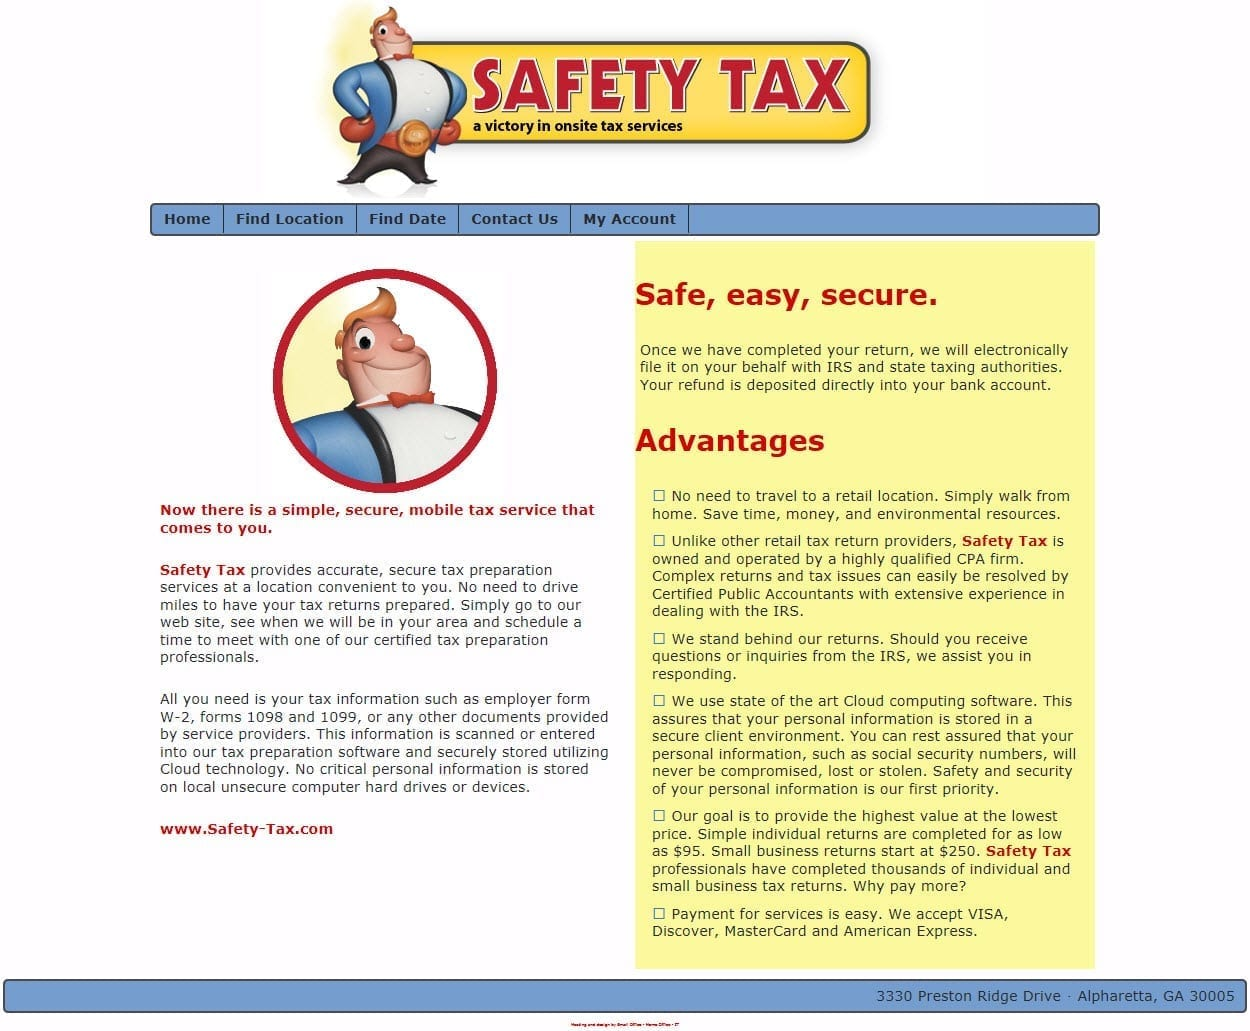 Safety Tax